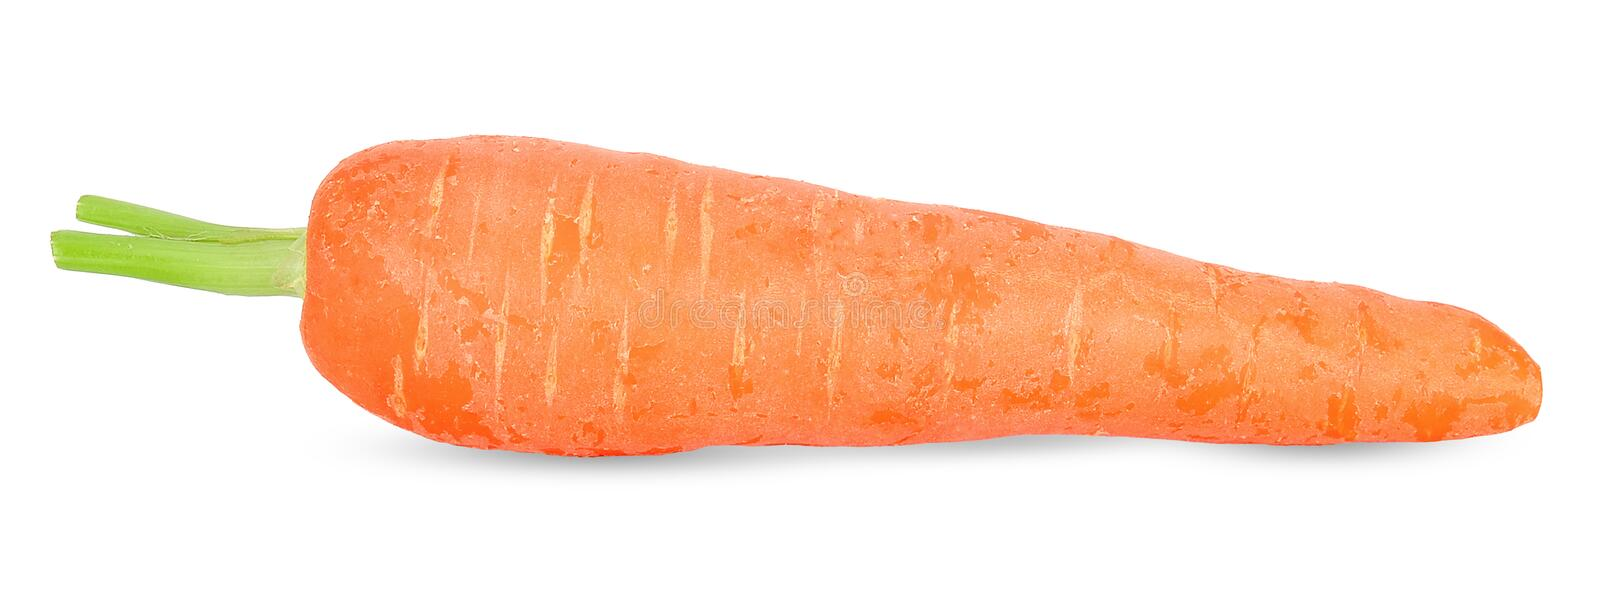 Fresh carrot isolated on white clipping path. Fresh carrot isolated on white with clipping path royalty free stock images